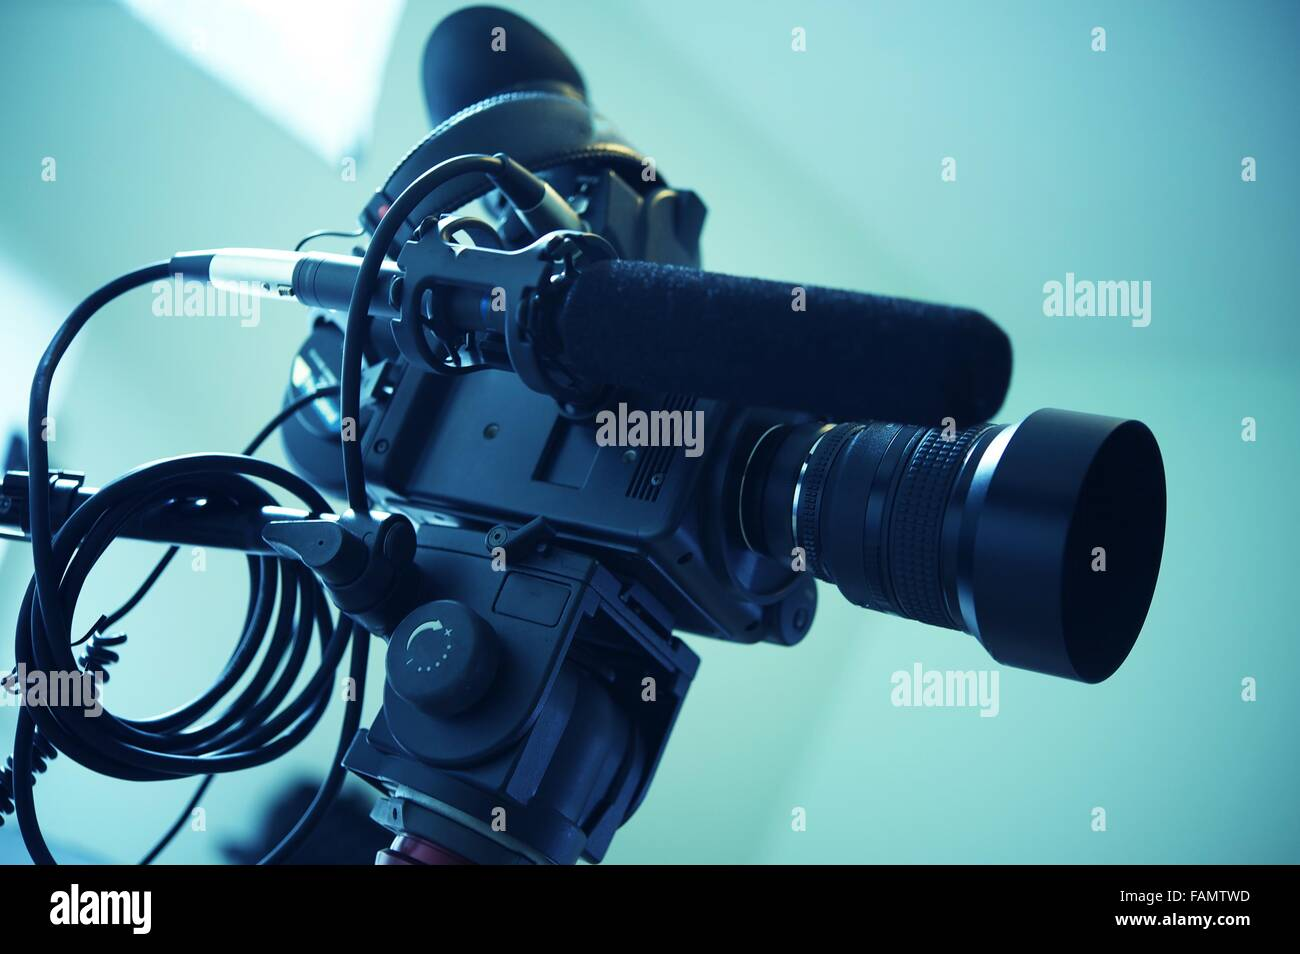 Interview Video Camera Setup. Modern Video Camera or Camcorder with Shotgun Microphone. Stock Photo